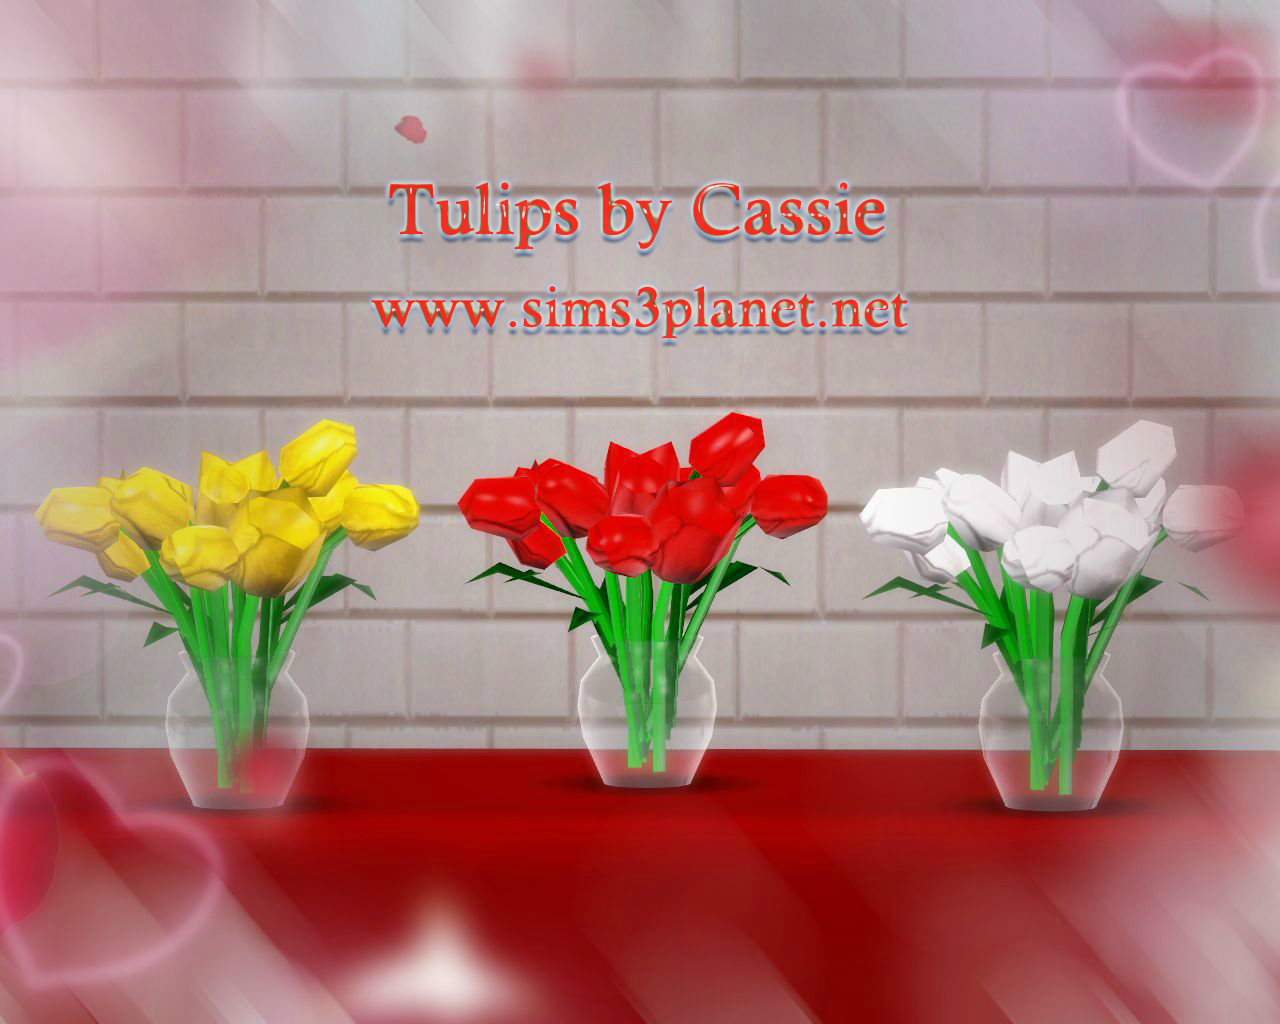 Tulips conversion by Cassie